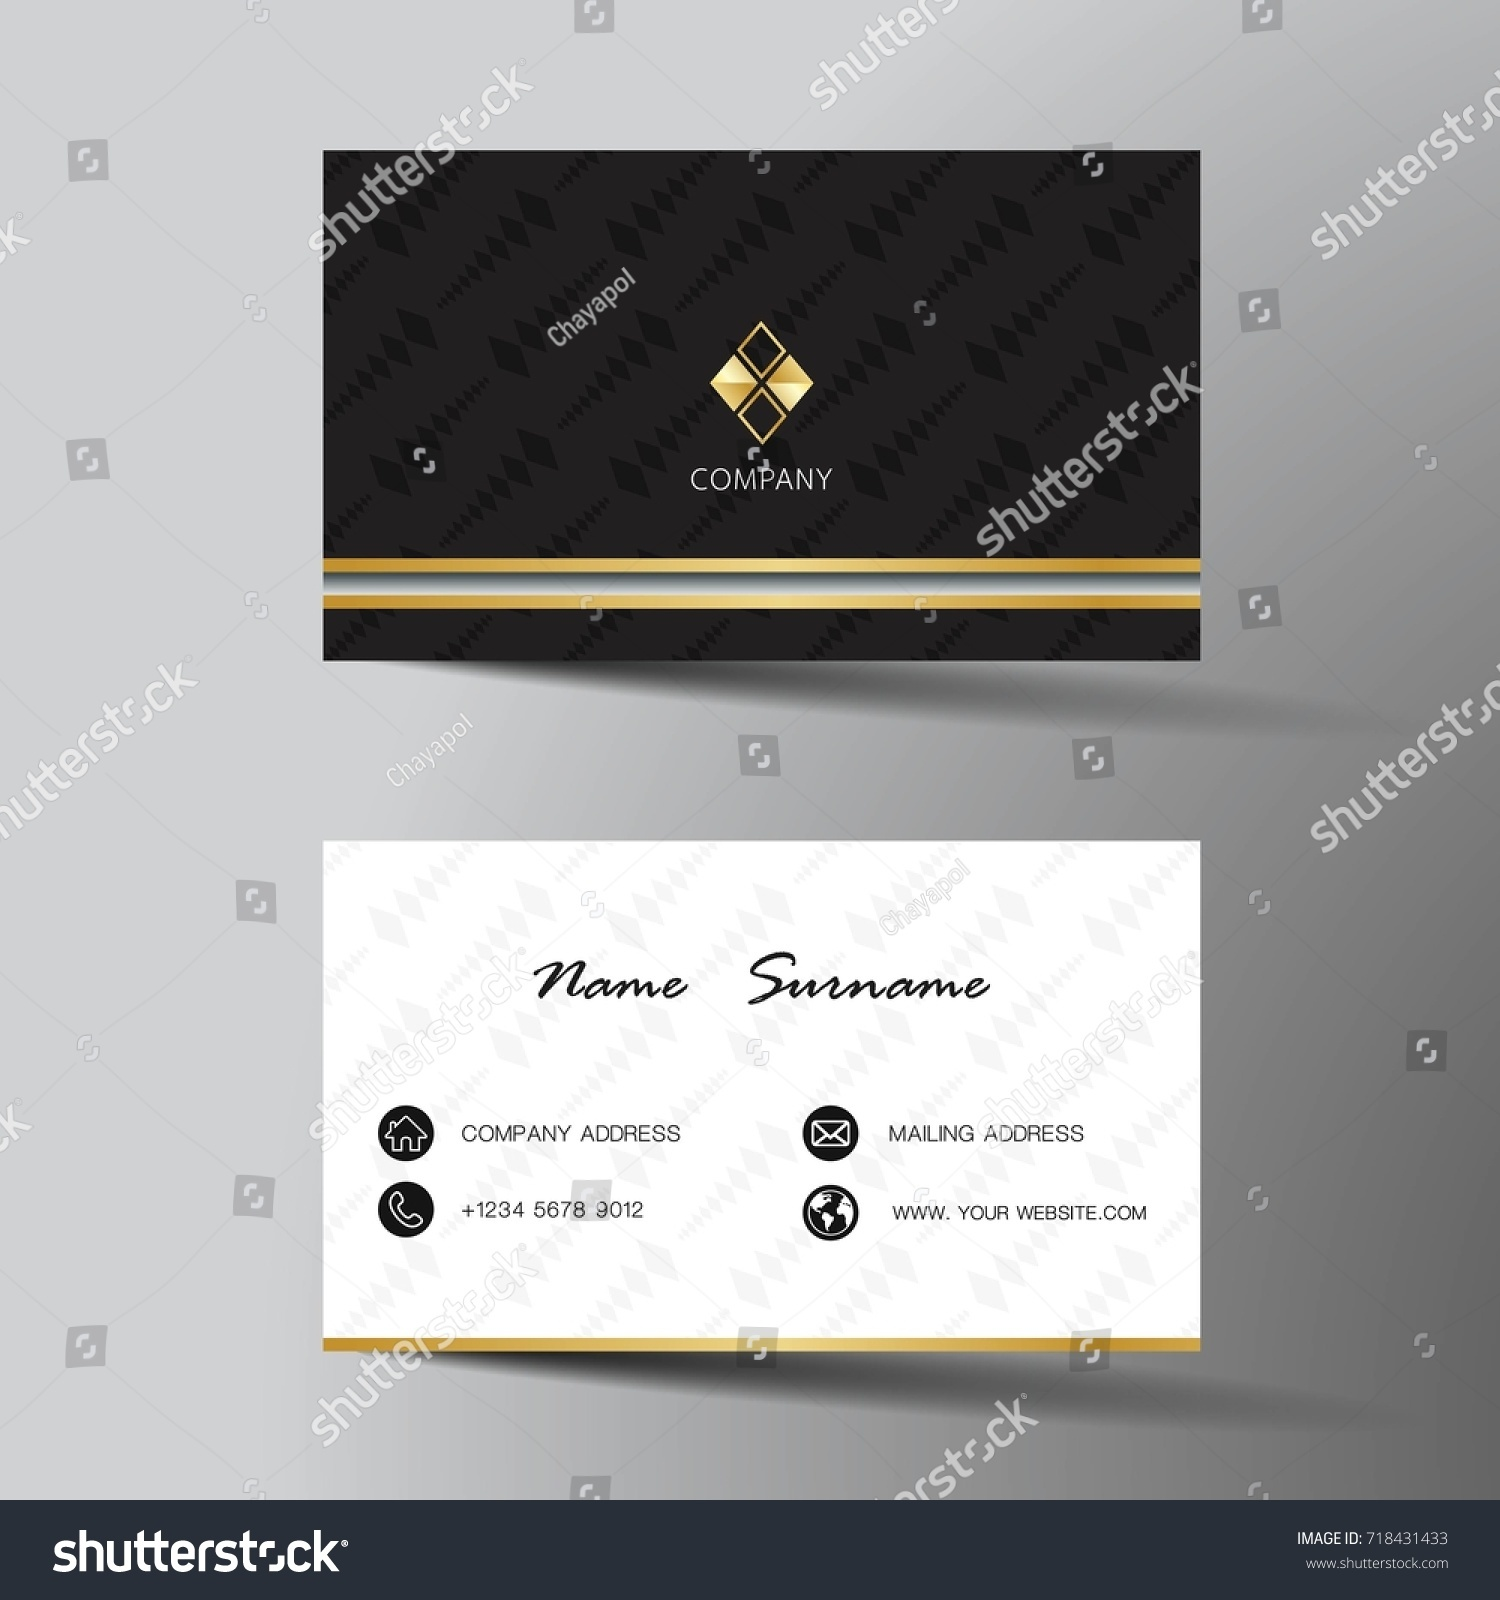 Modern business card template design inspiration stock vector modern business card template design with inspiration from the abstractntact card for company reheart Choice Image